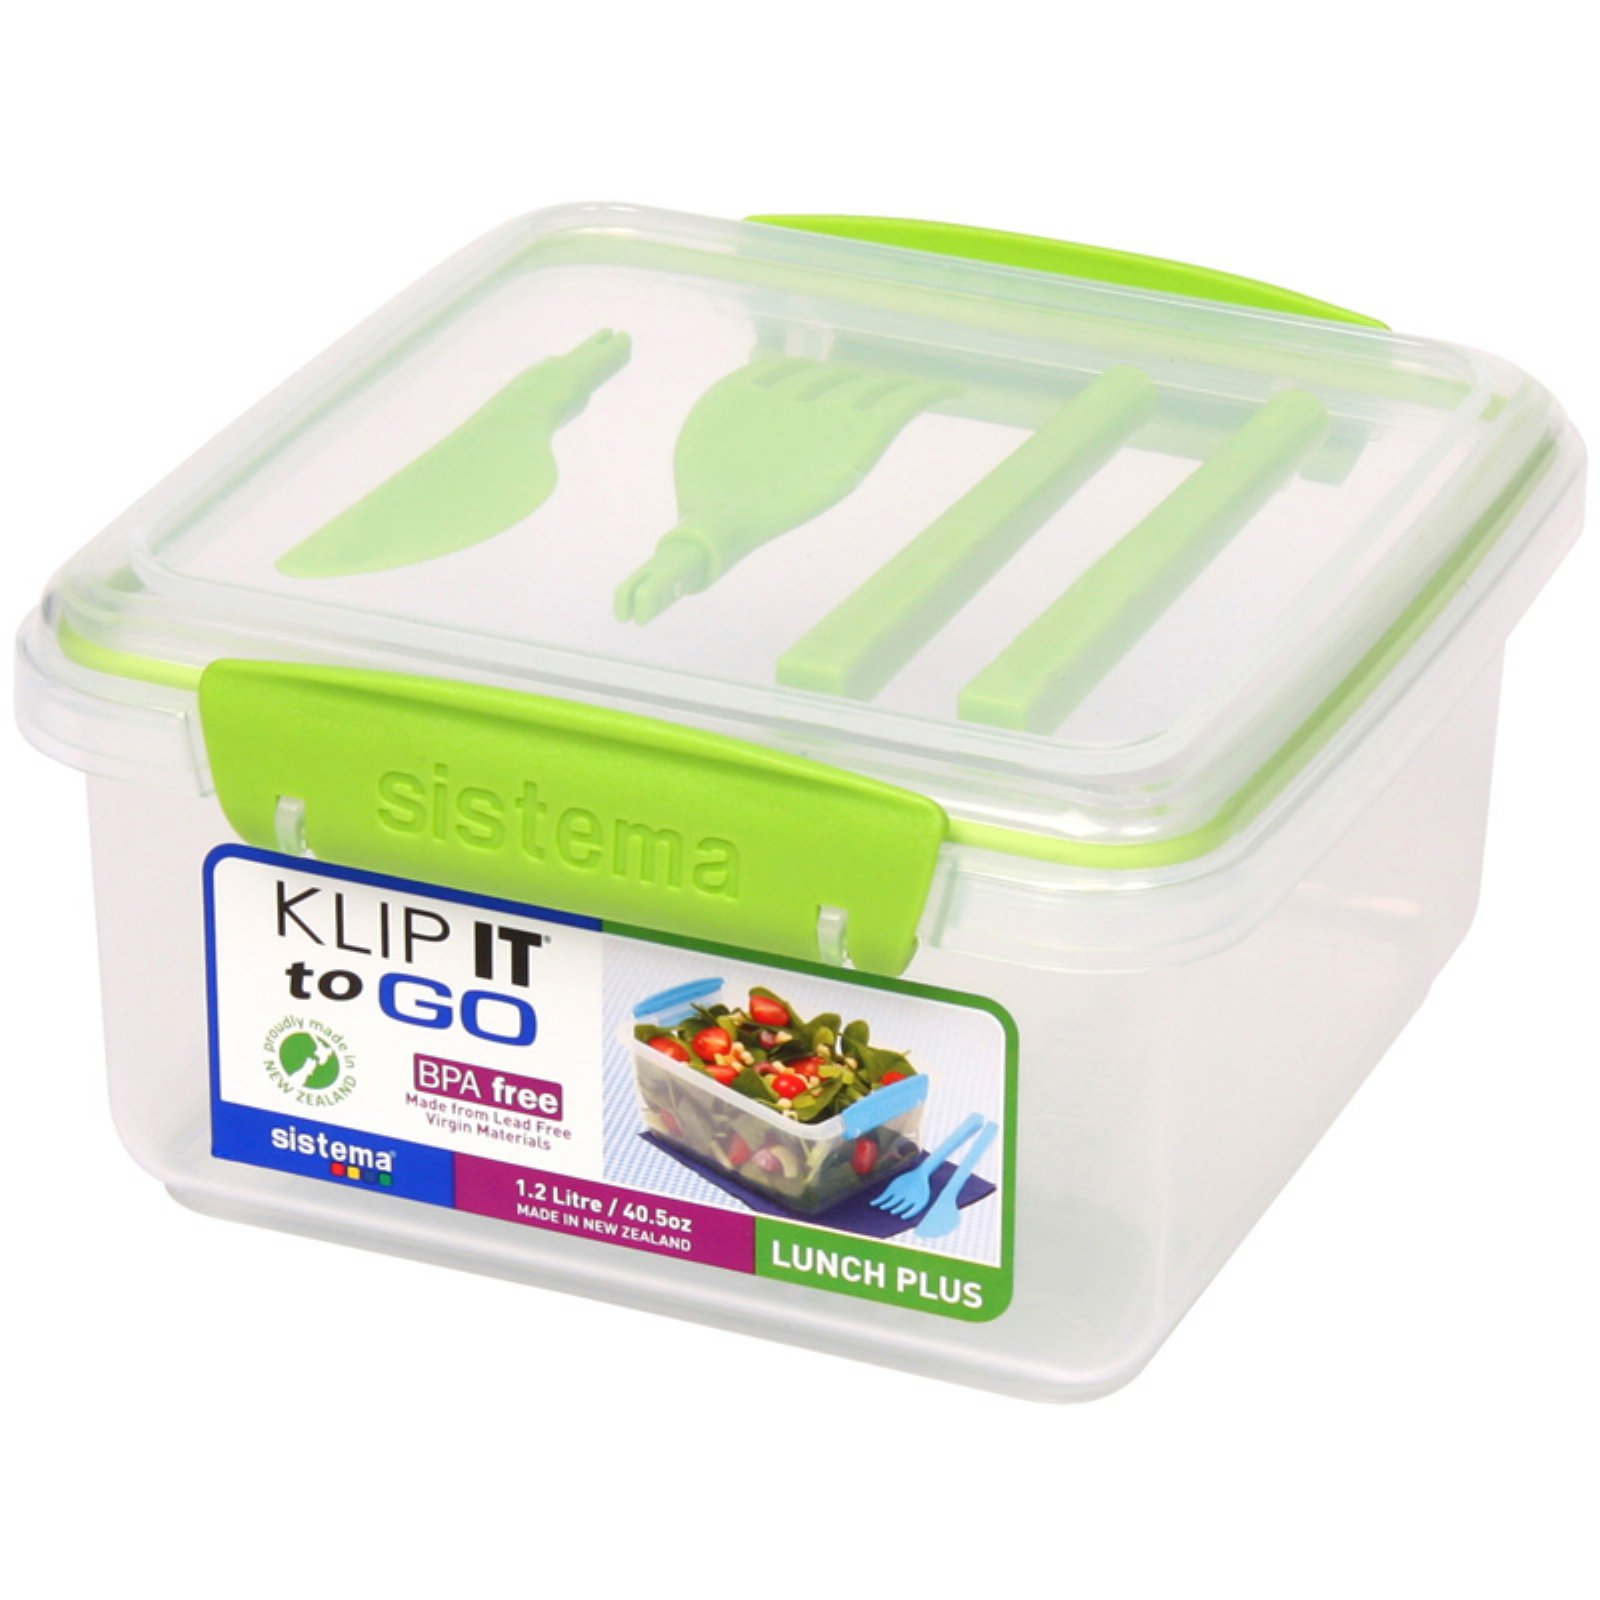 Sistema US 2 L Clear Lunch Cube Max Box To Go with Yogurt Pot